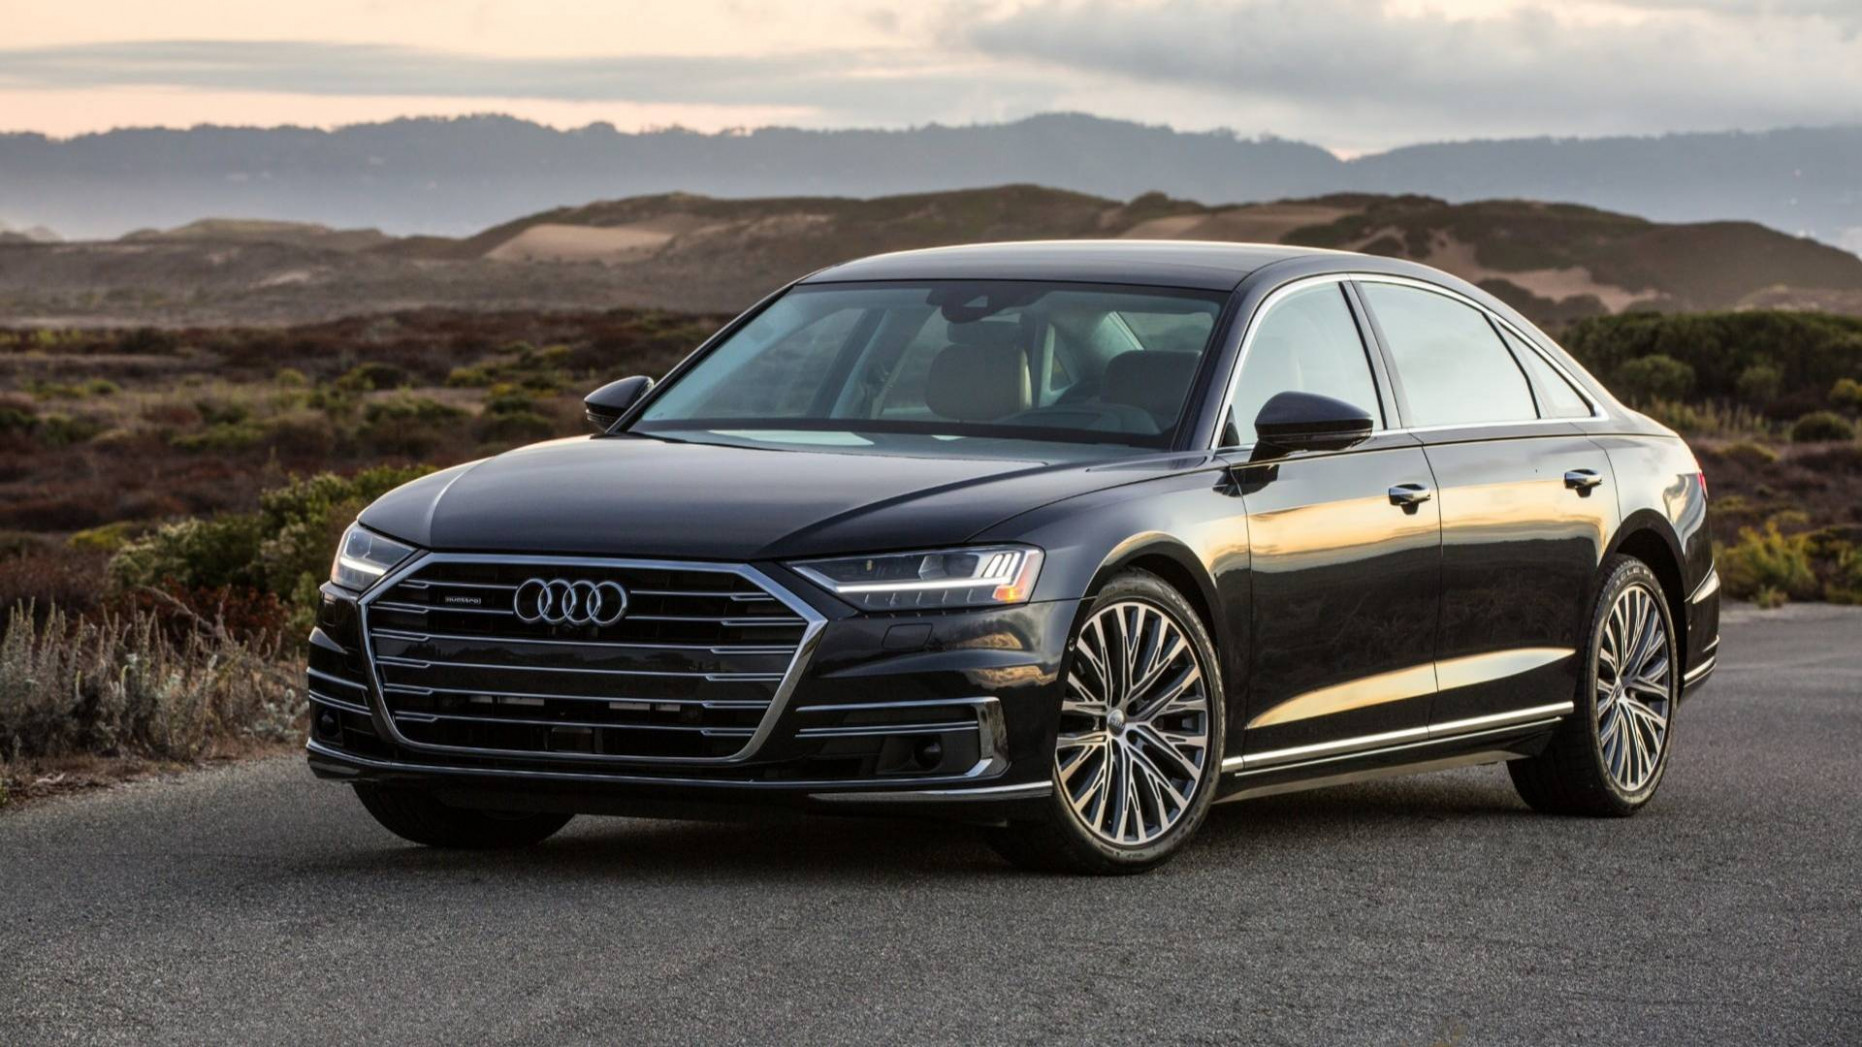 Exterior and Interior 2022 Audi A8 L In Usa